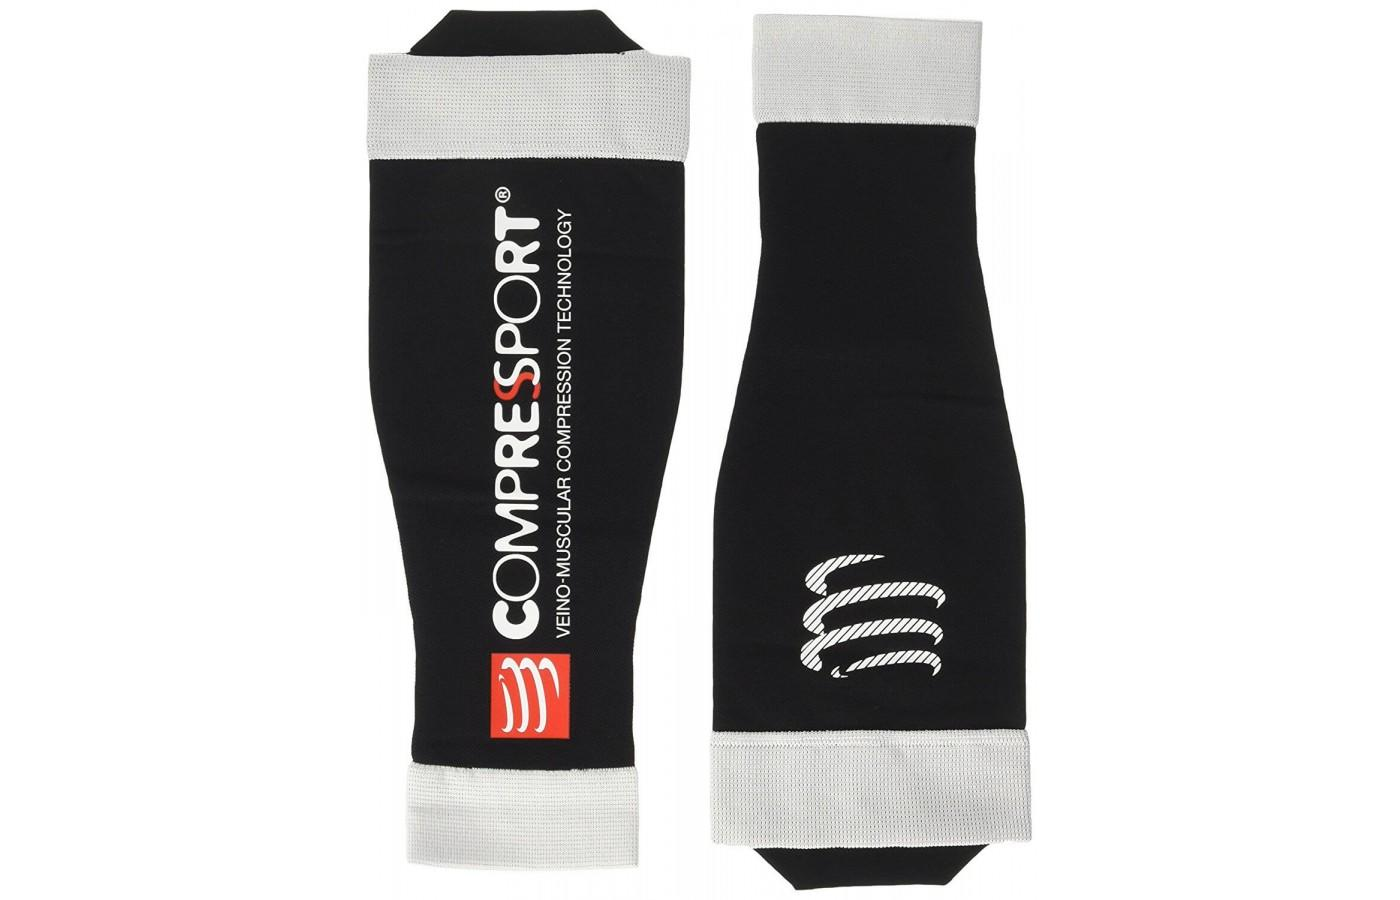 The Compresssport Calf Sleeves come in four sizes